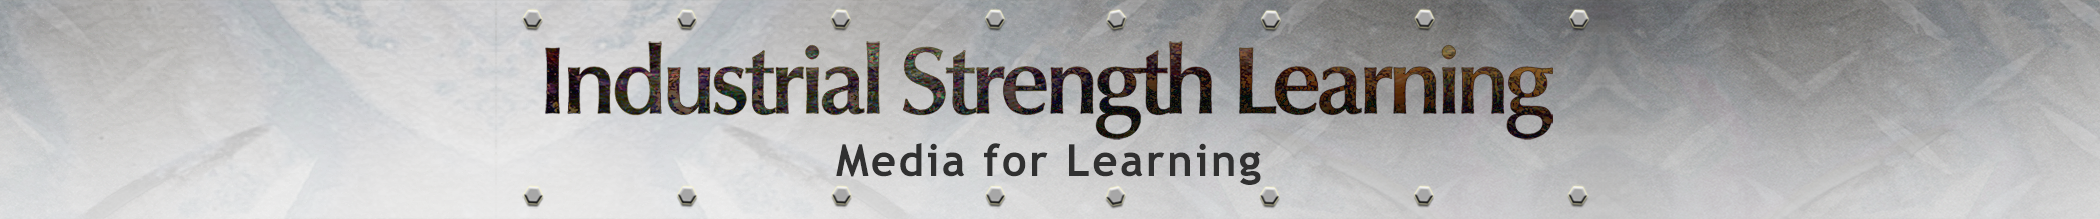 Industrial Strength Learning